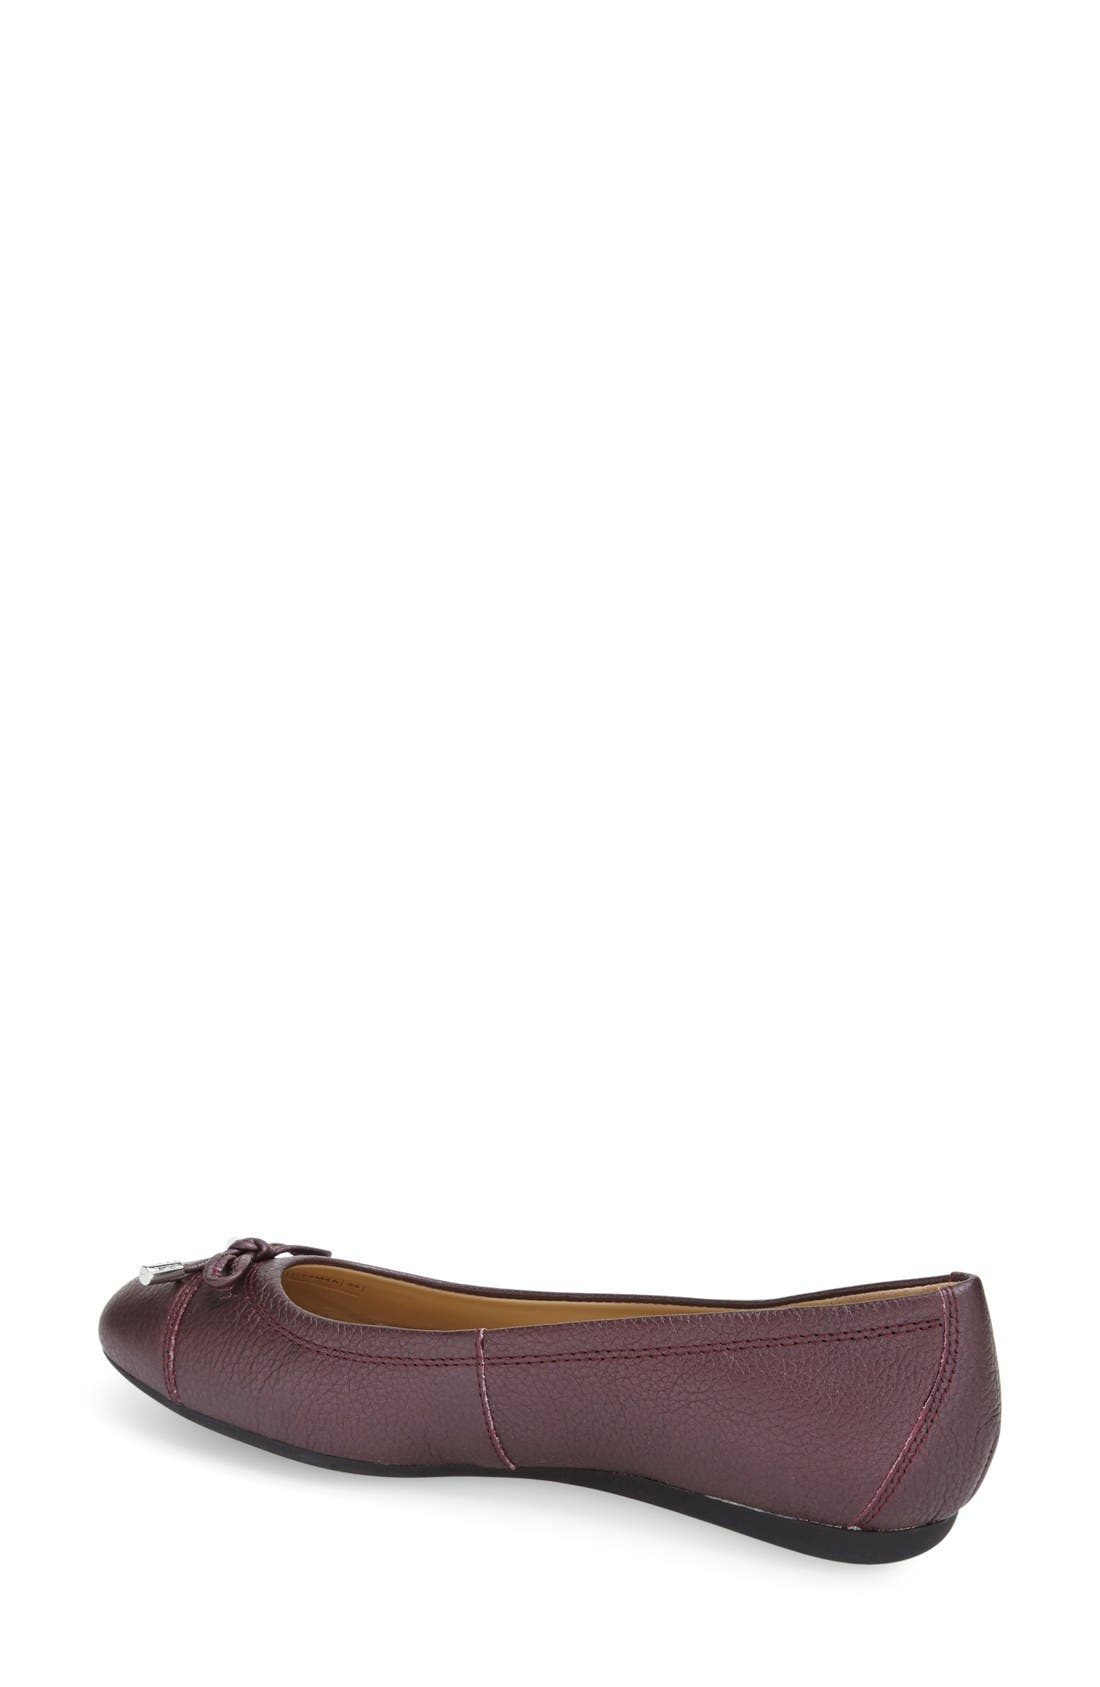 'Lola 16' Cap Toe Ballet Flat,                             Alternate thumbnail 8, color,